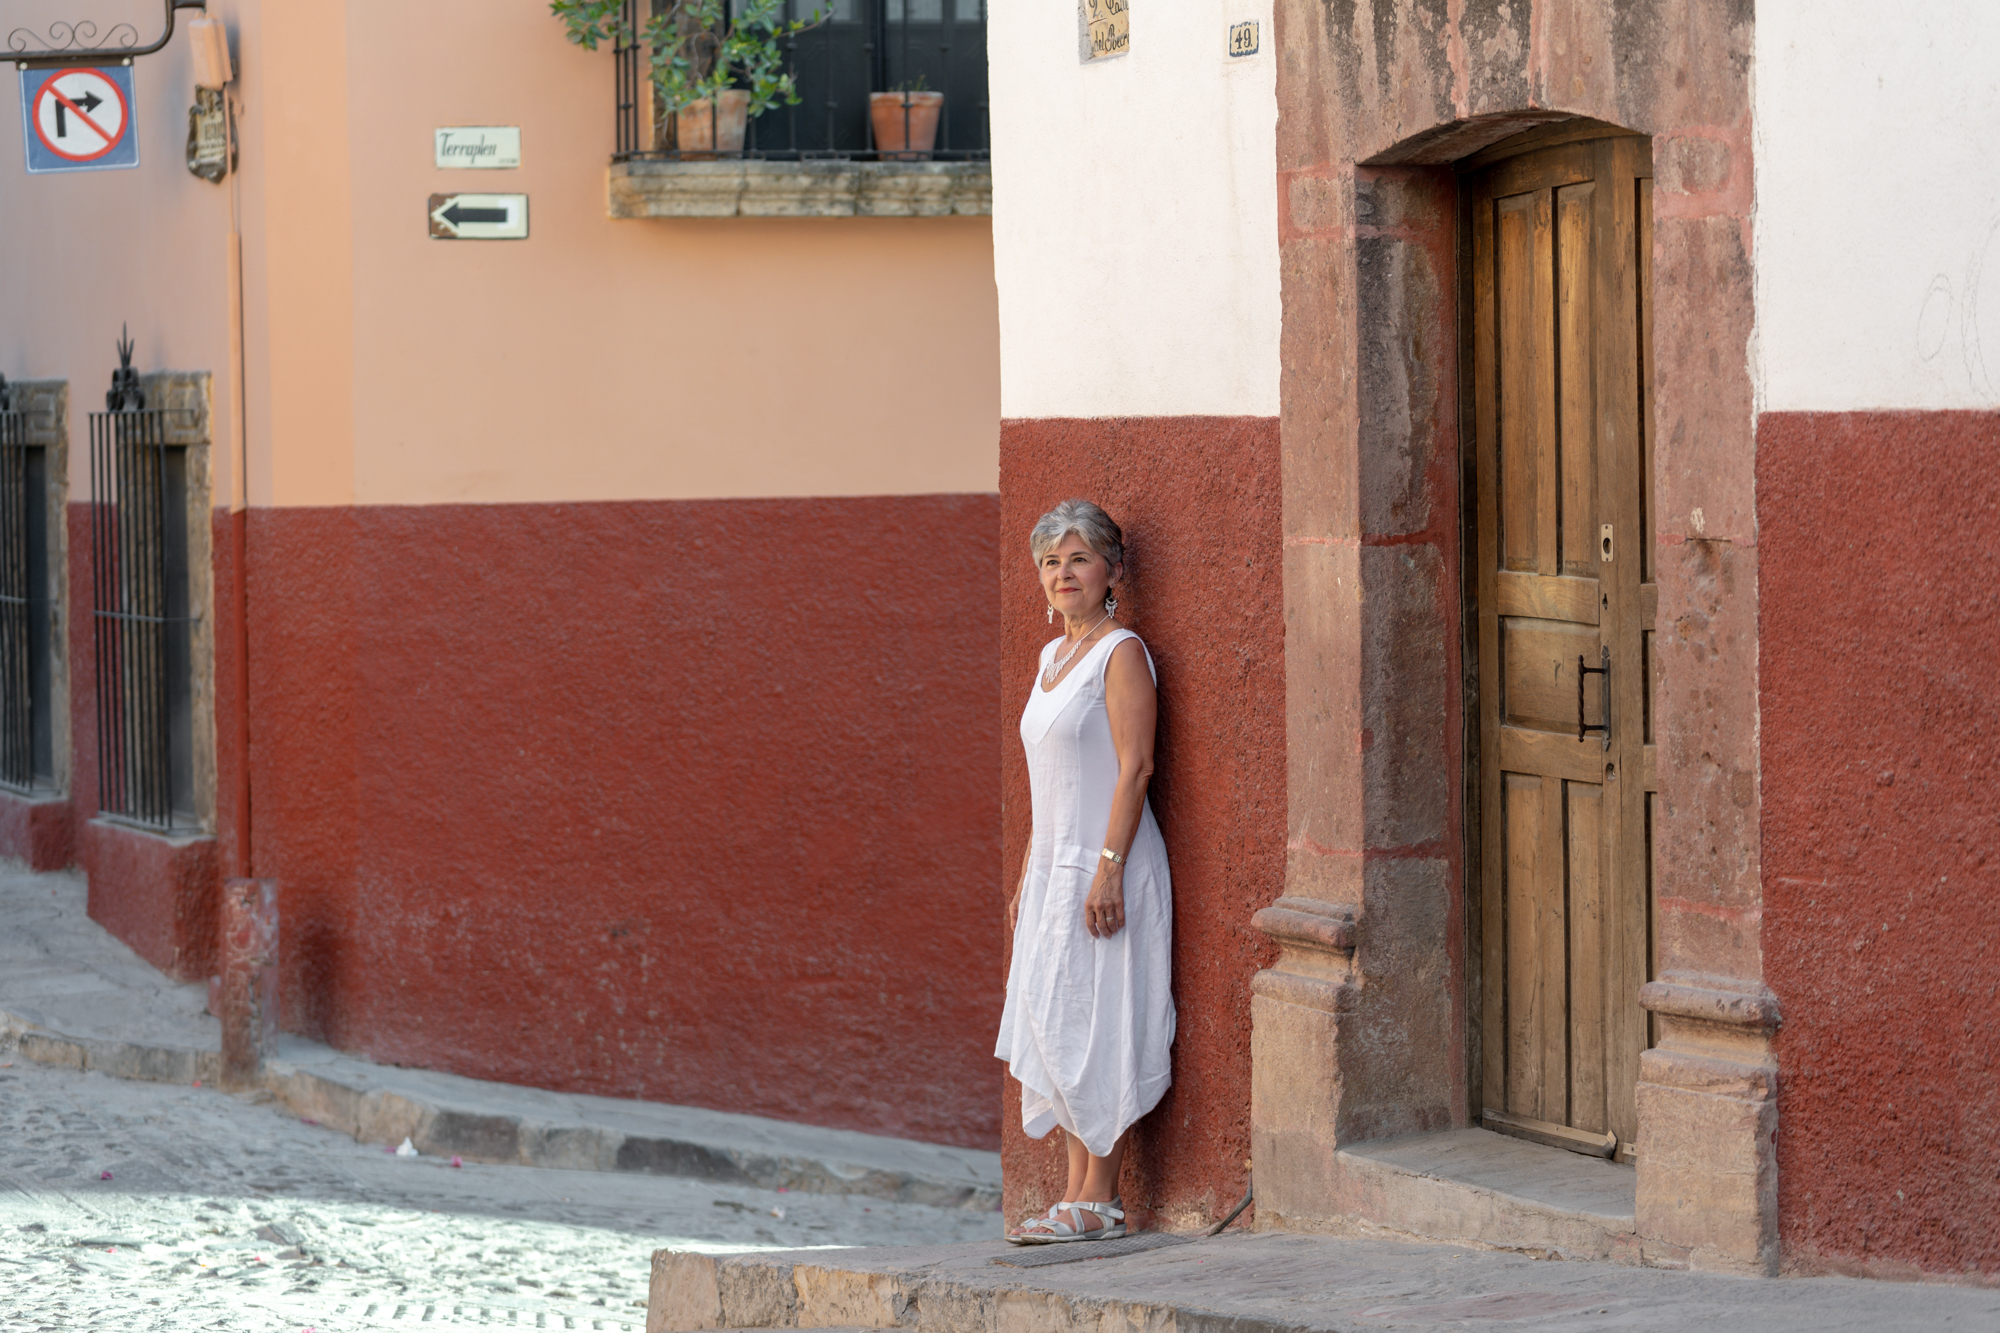 Photoshoot session in San Miguel de Allende with Suzanne and Leo-30.jpg